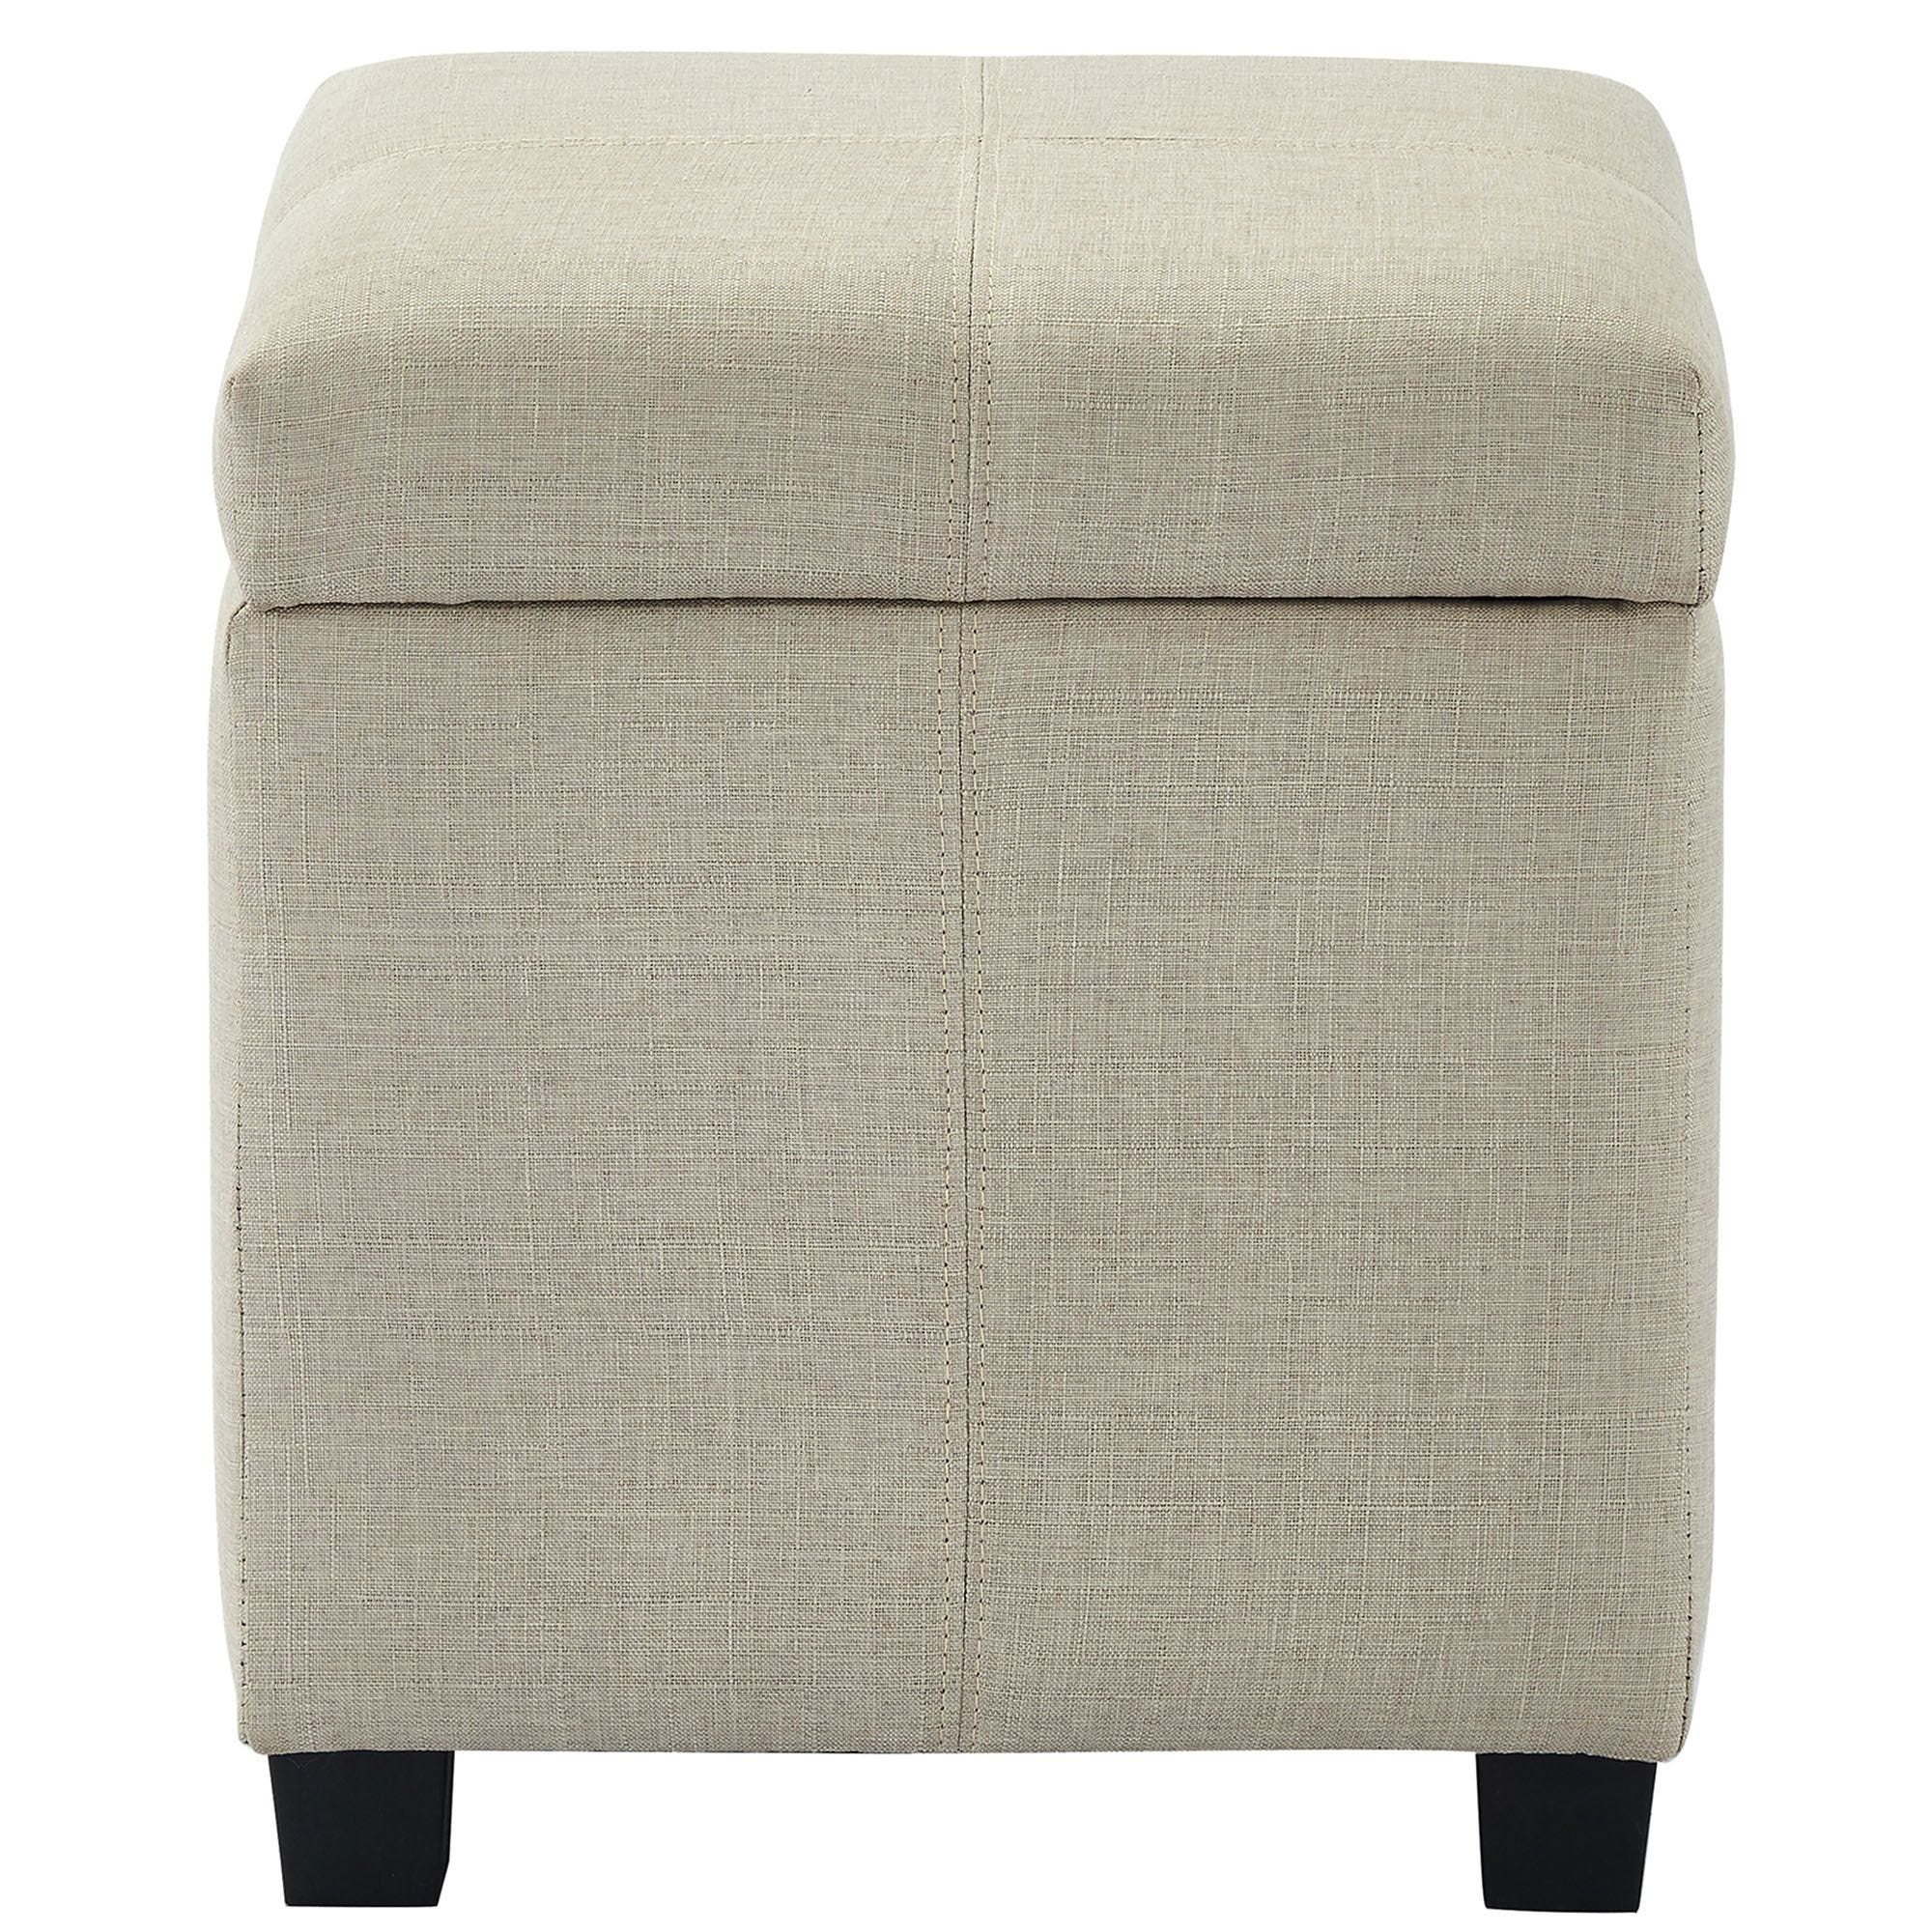 Wine time cube ottoman from my art